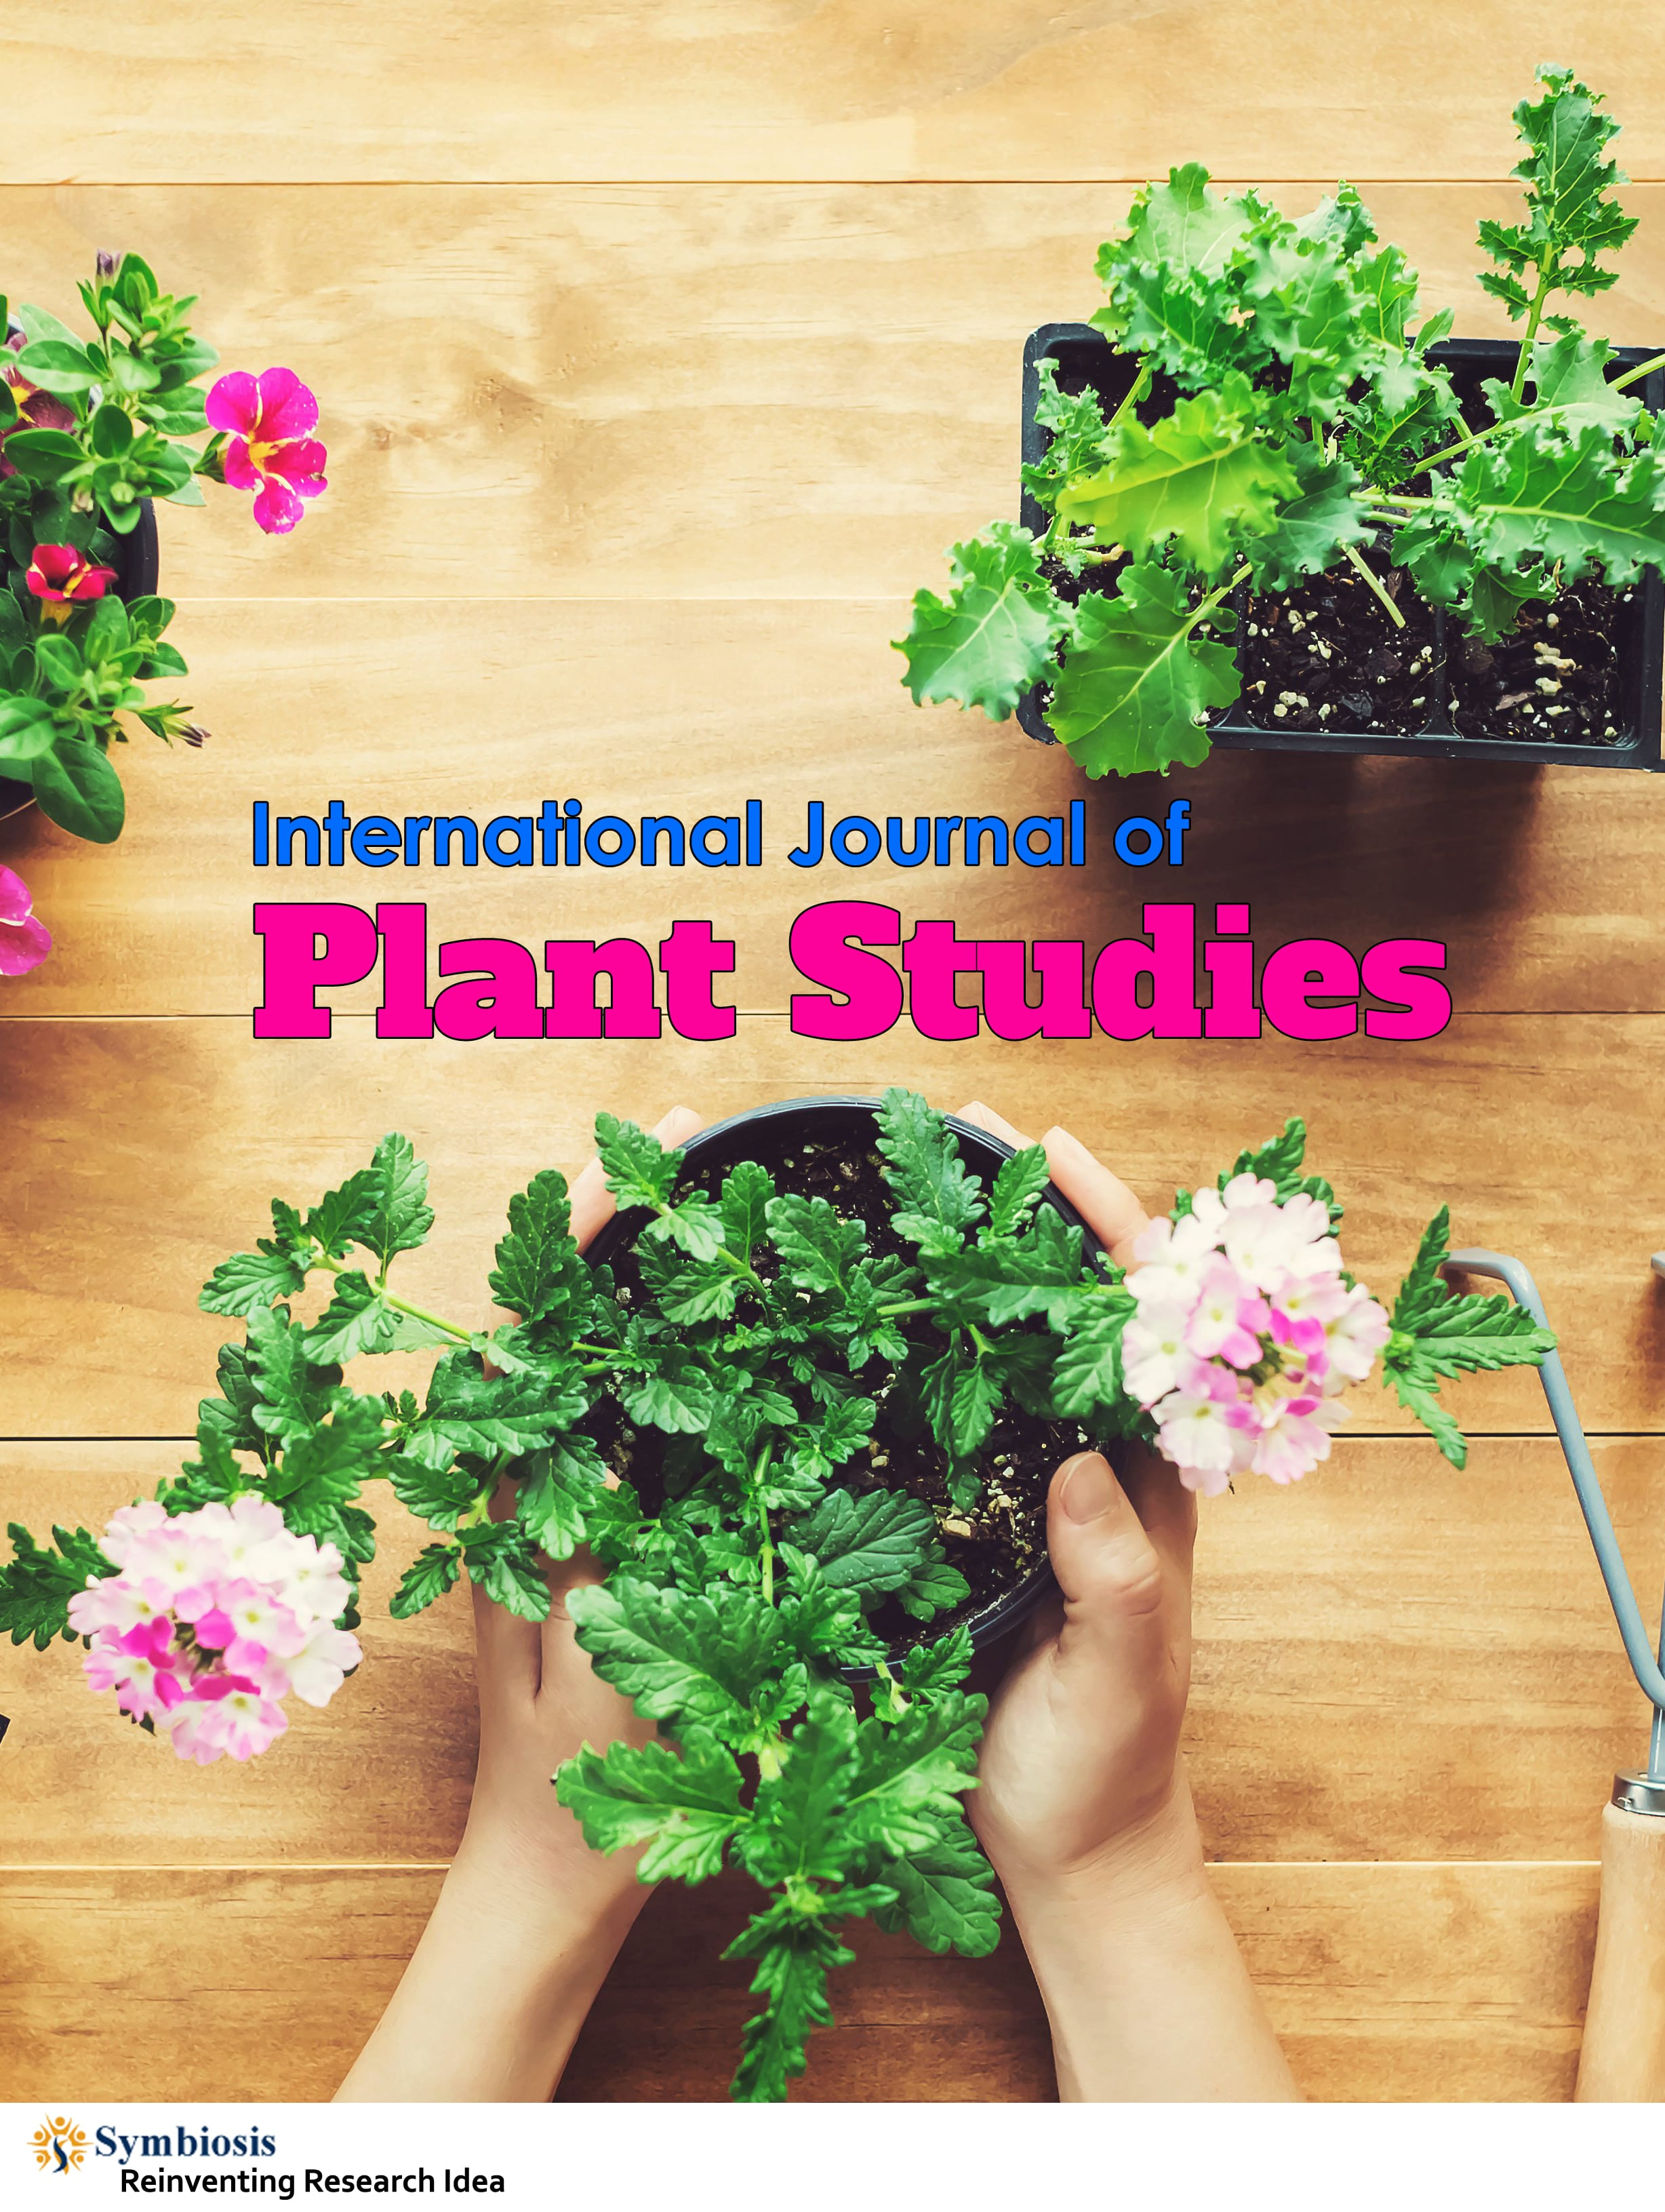 International Journal of Plant studies